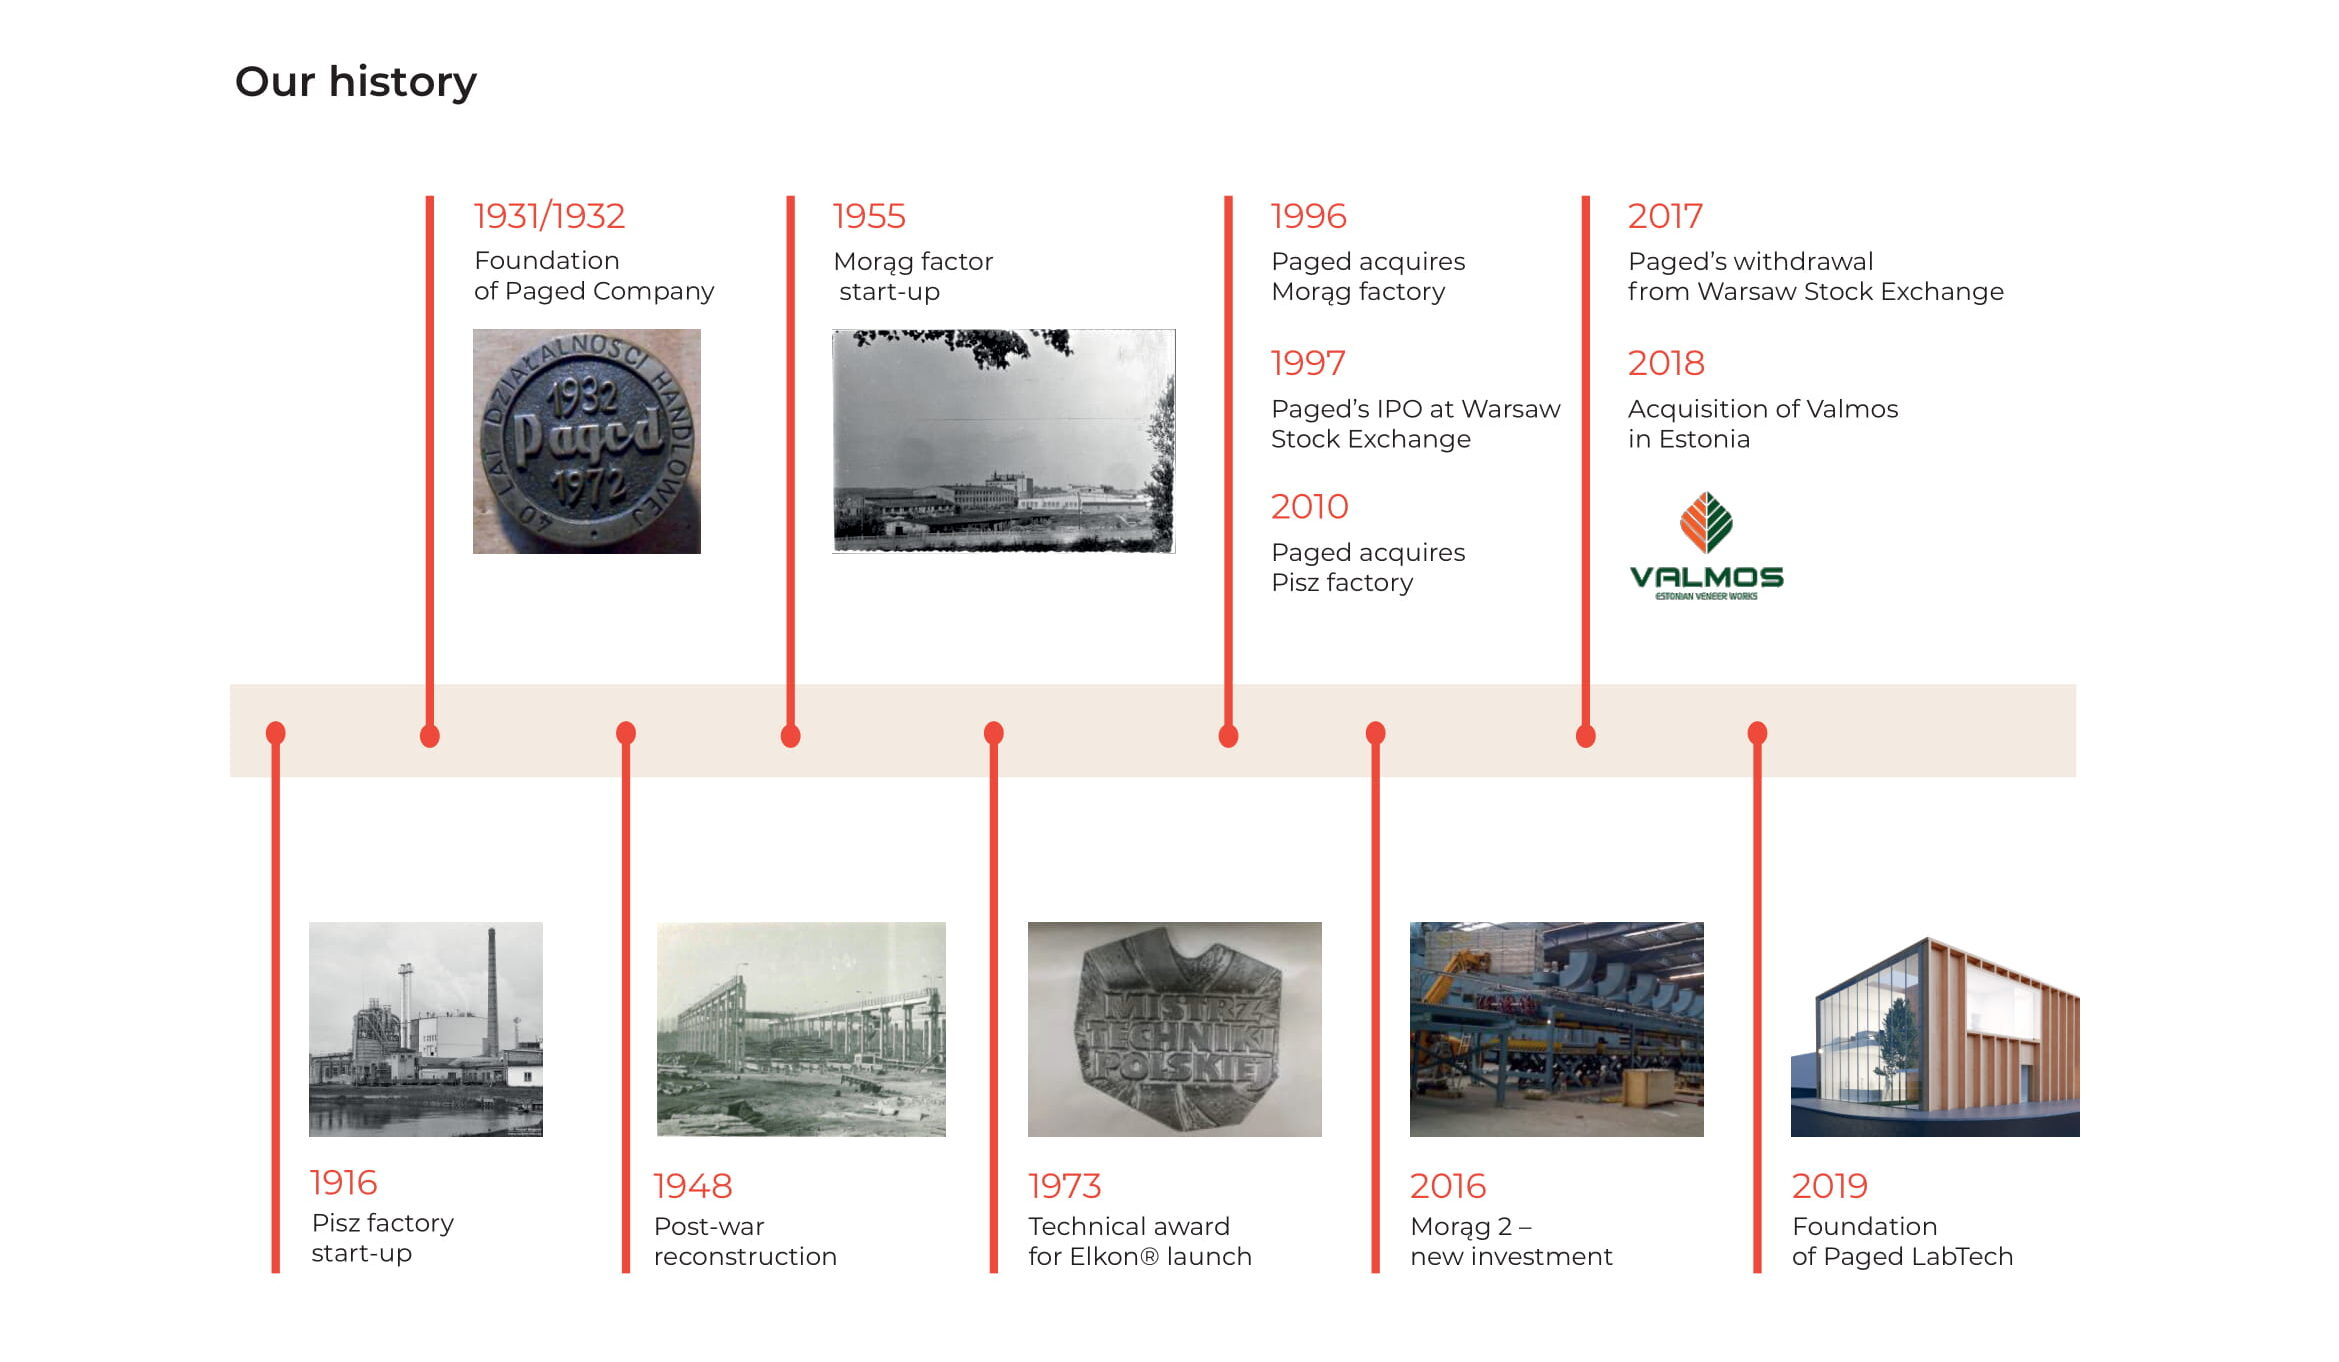 Our history timeline from catalogue